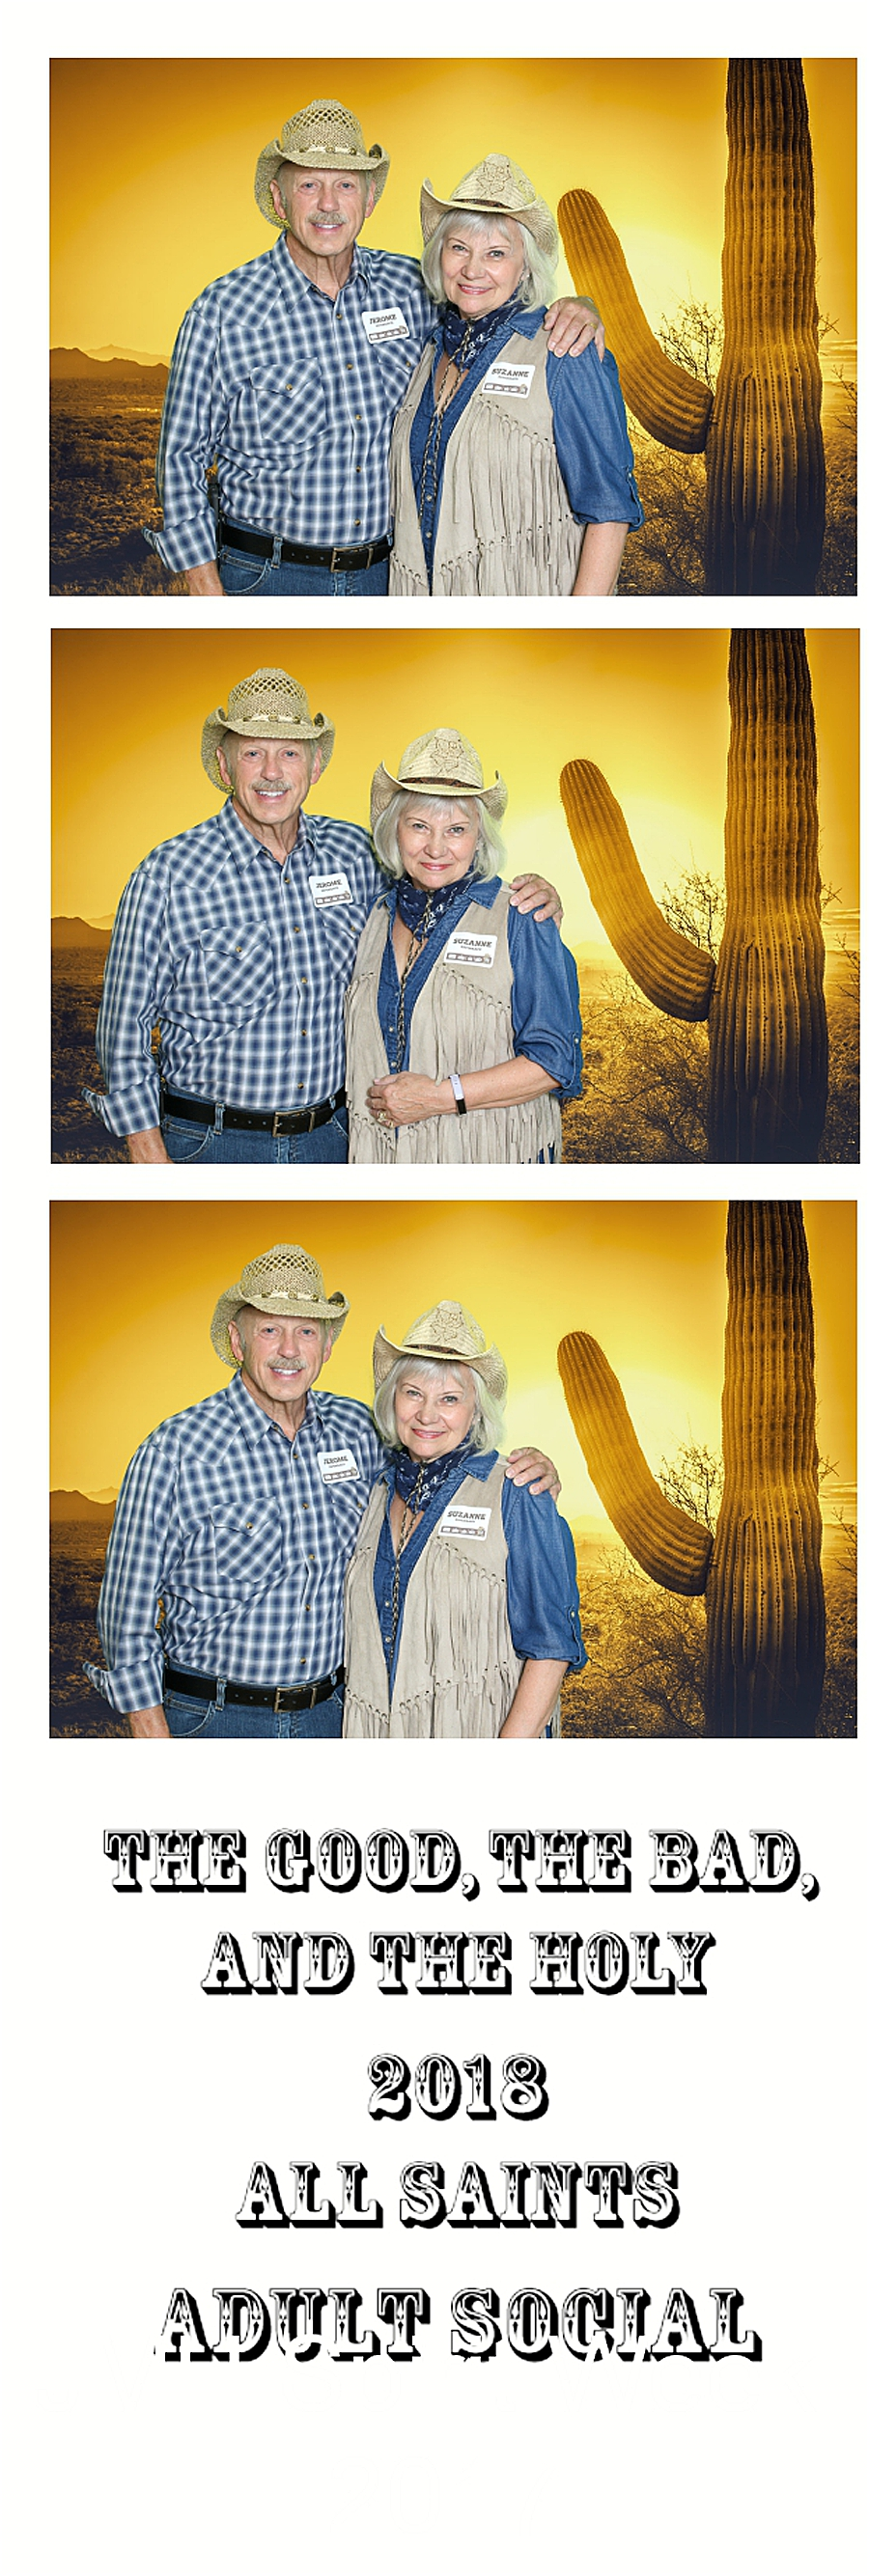 Knoxville Photo Booth_1302.jpg